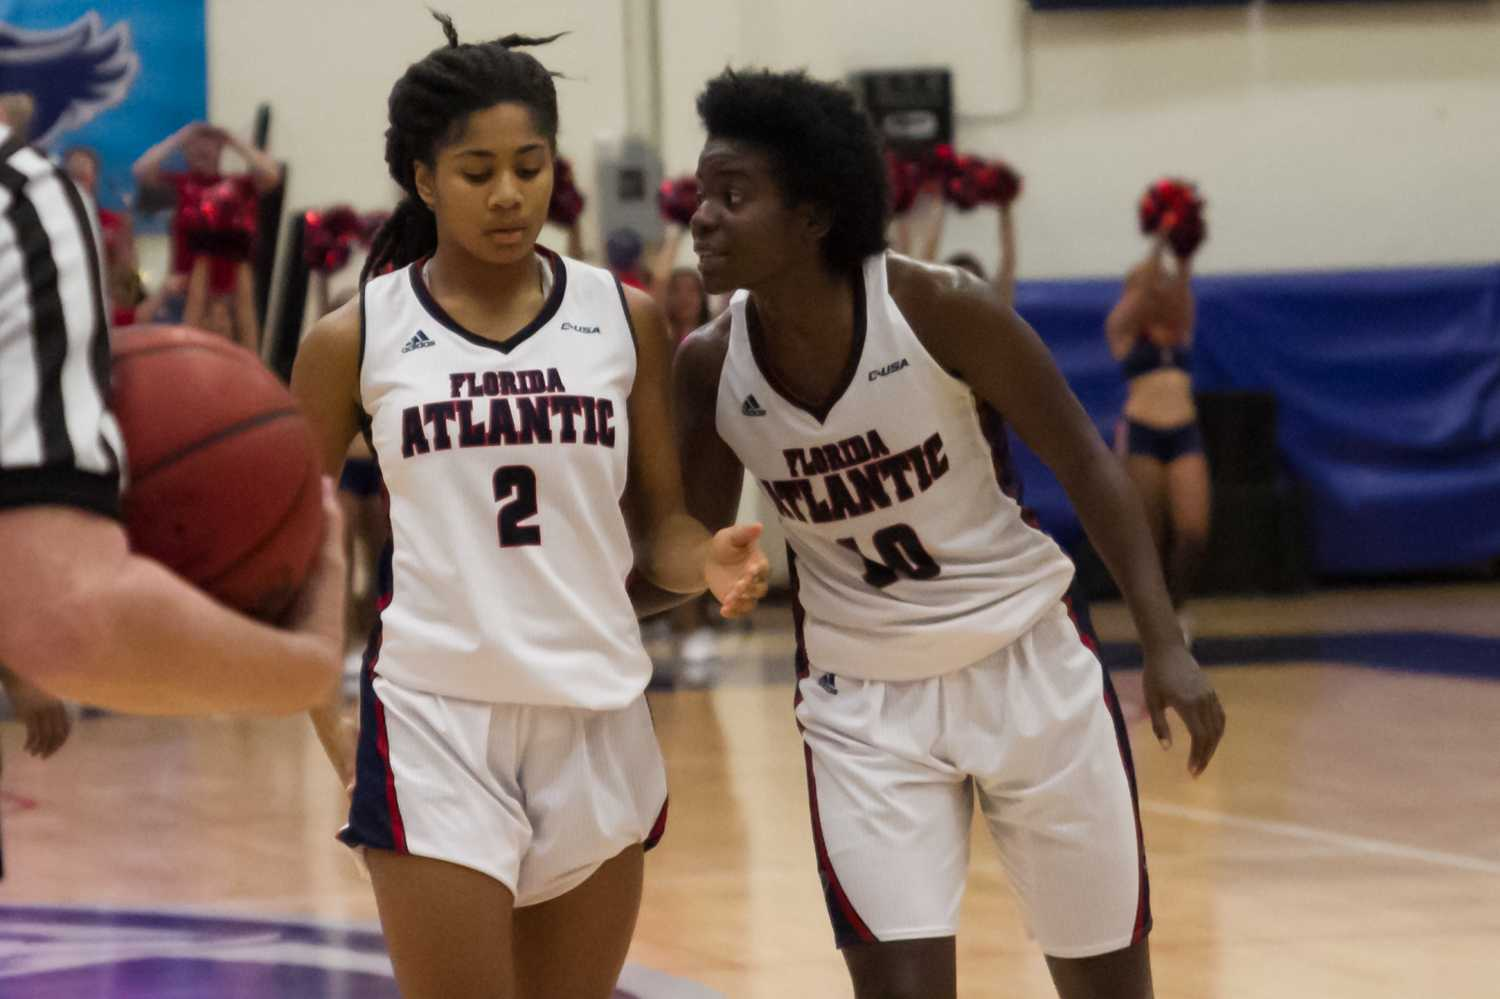 Morgan Robinson motivates teammate Shaneese Bailey (2) before a free throw late in the second half.